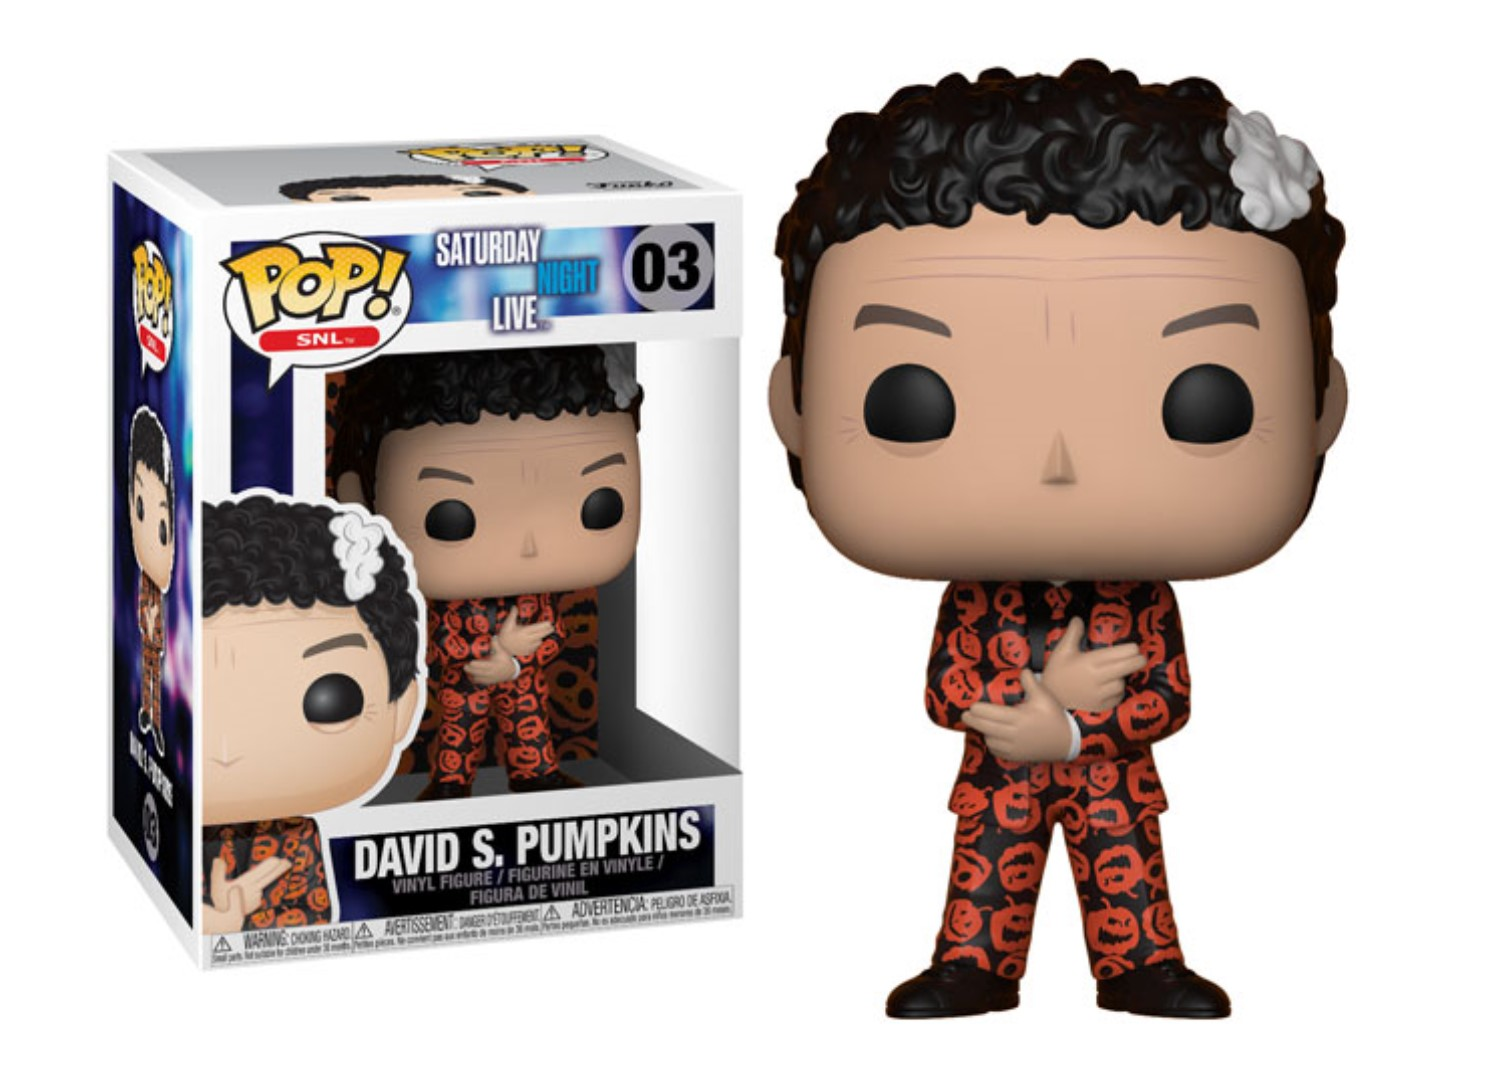 Vinilo Saturday Night Live Dick en una caja 2 Pack Figura Funko POP